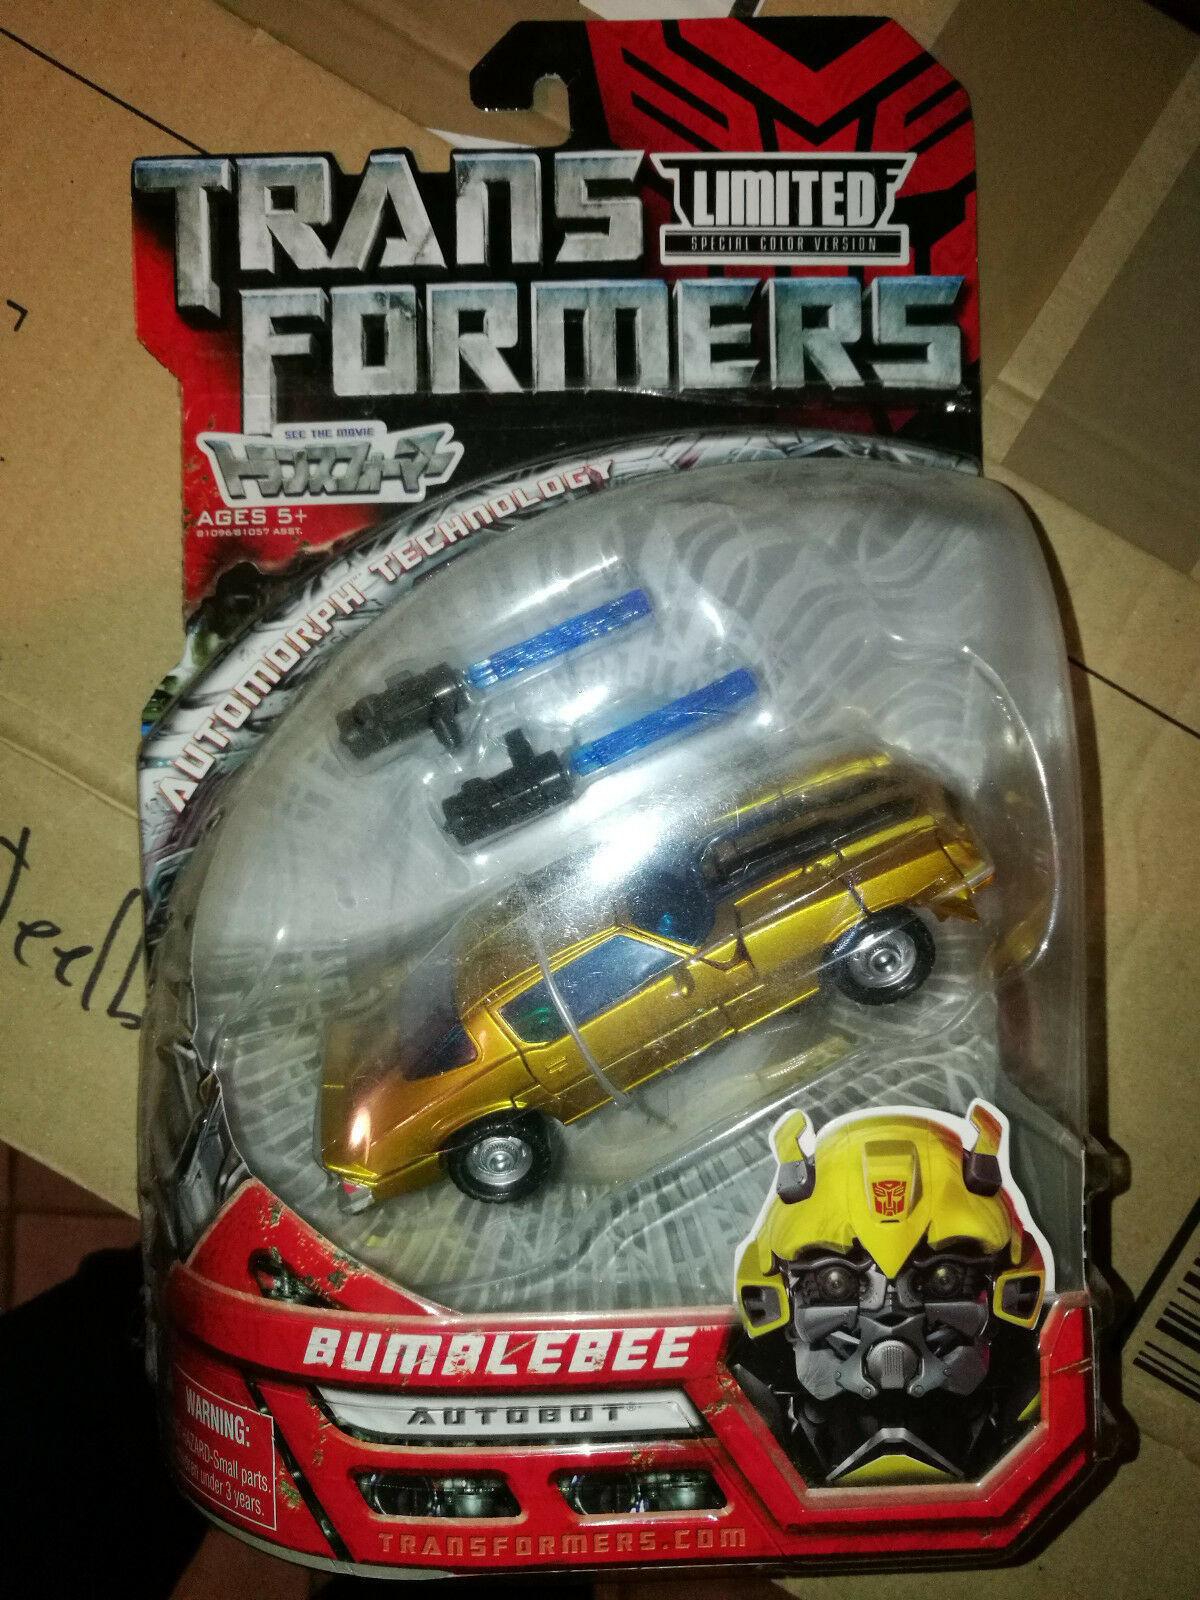 Transformers Movie Deluxe Takara Lawson Limited Classic Camaro or Bumblebee